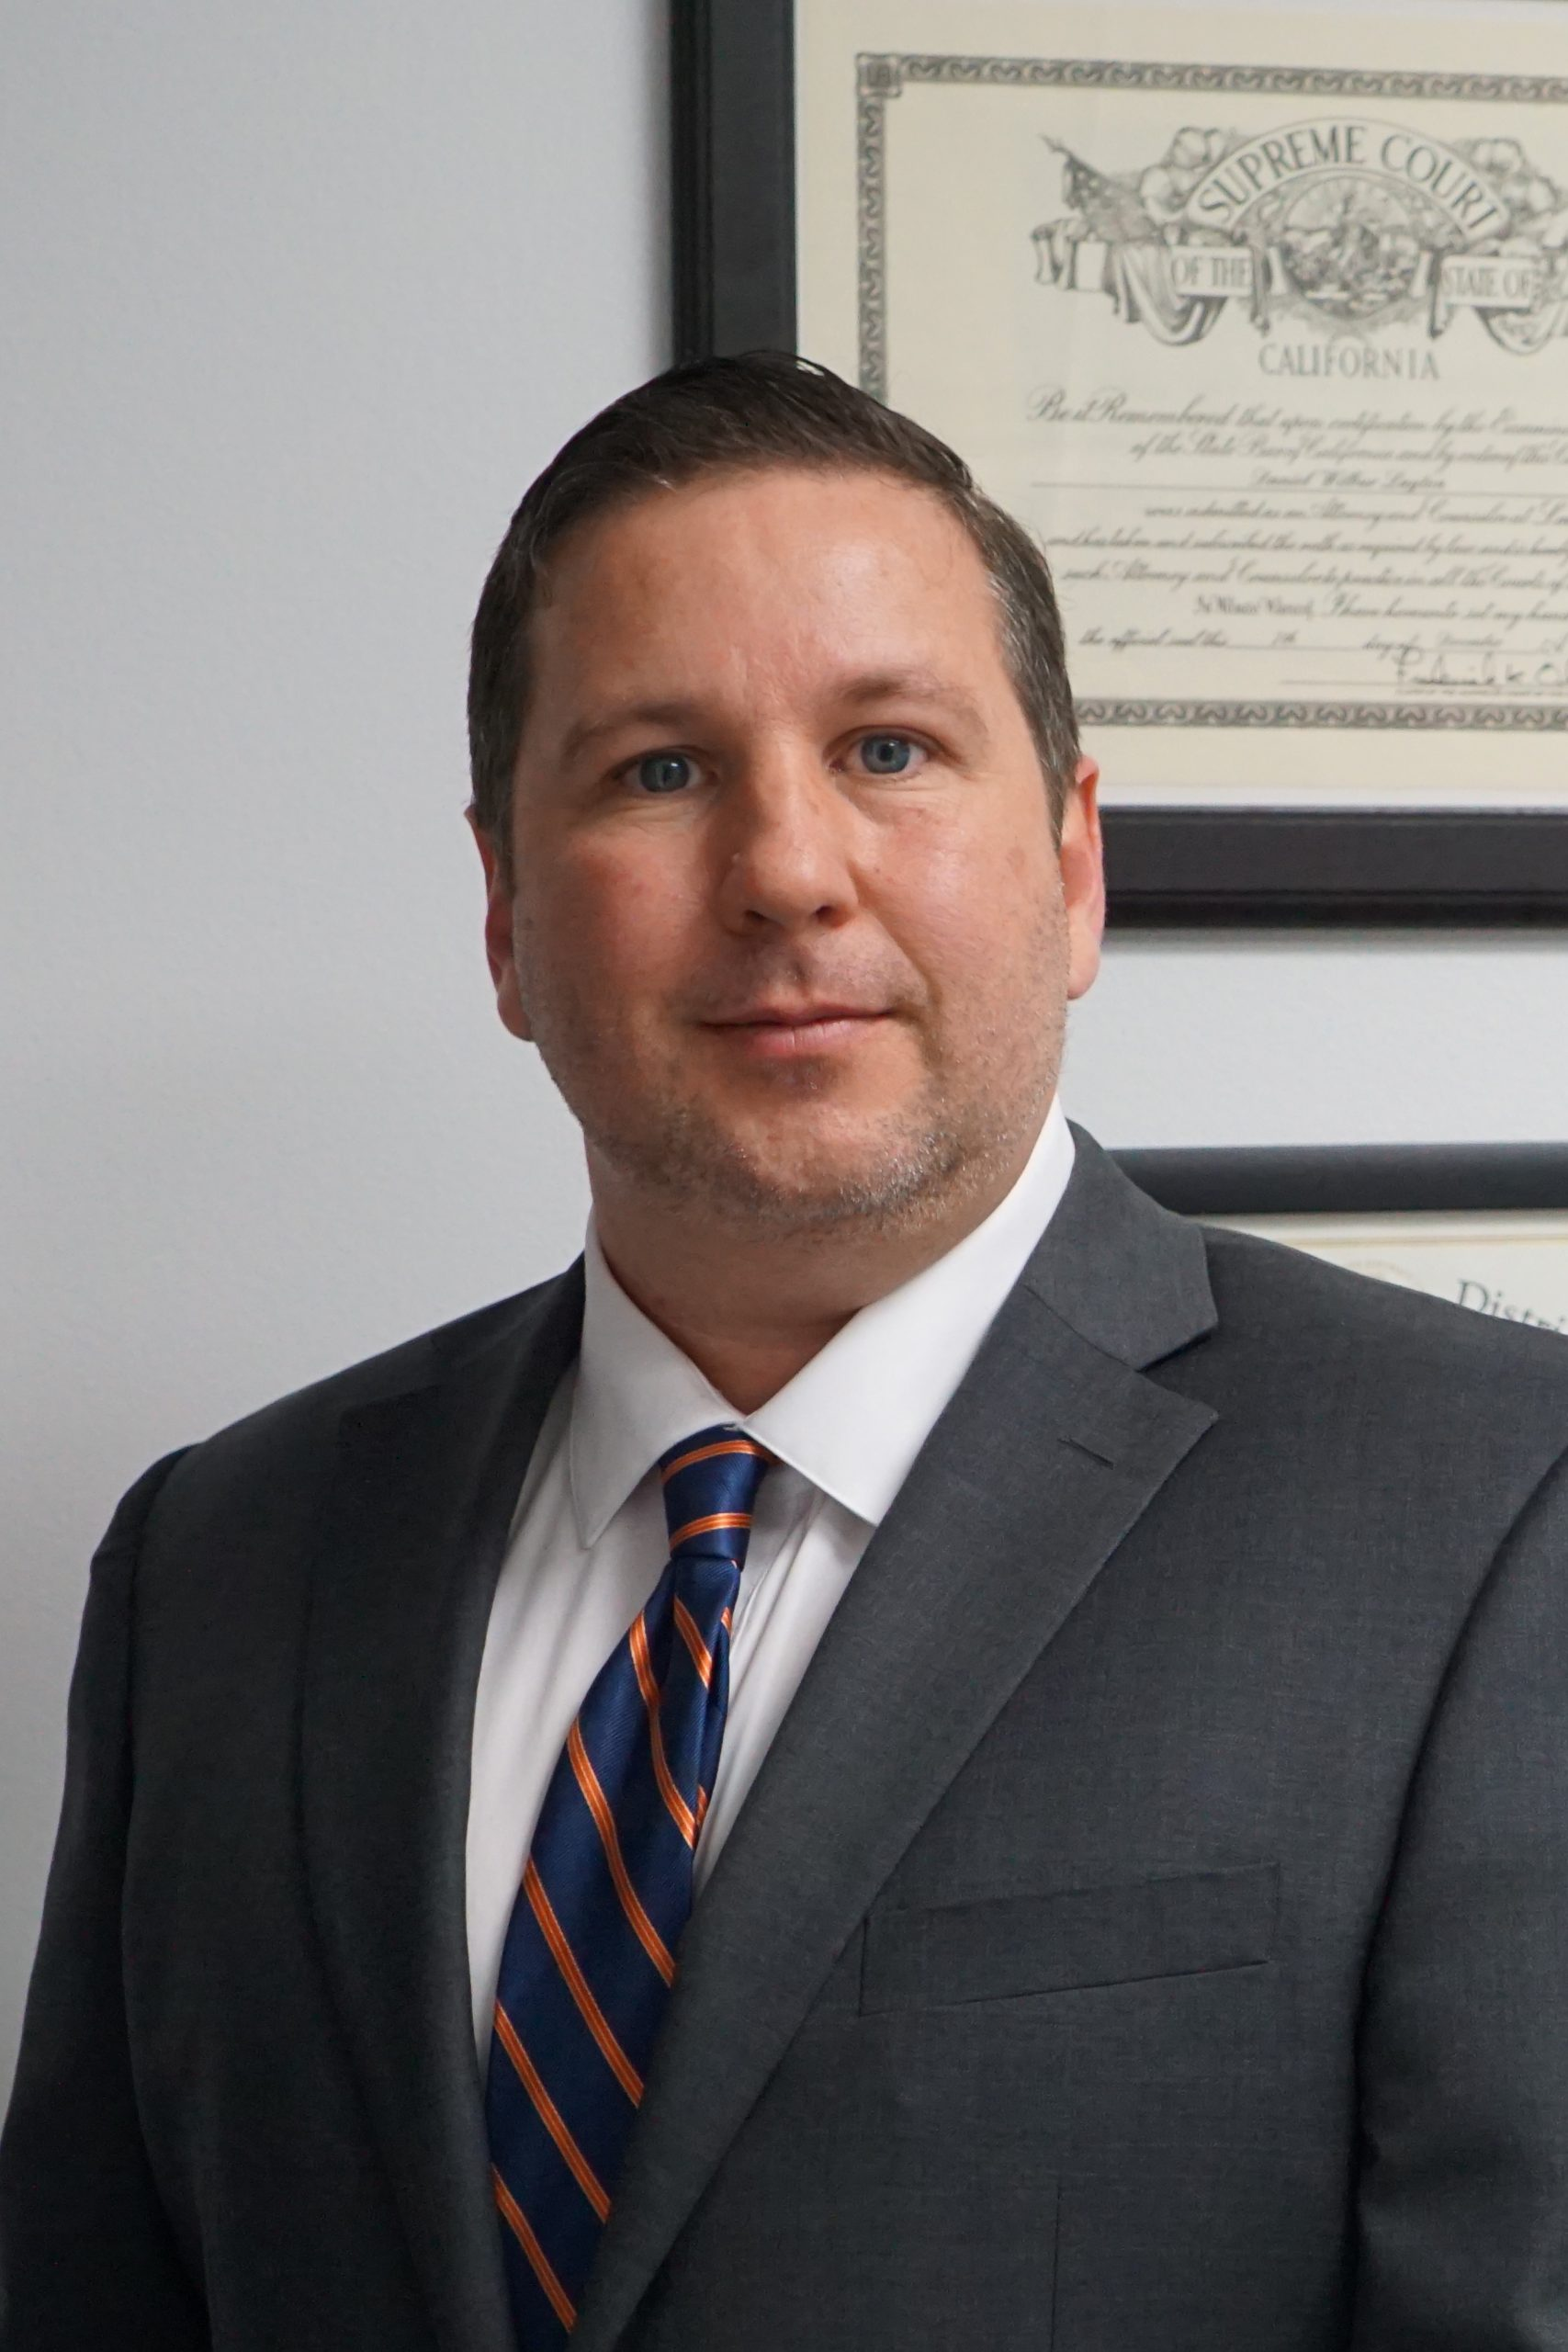 A former IRS and DOJ attorney, Daniel Layton has successfully defended federal and state dual determination investigations.